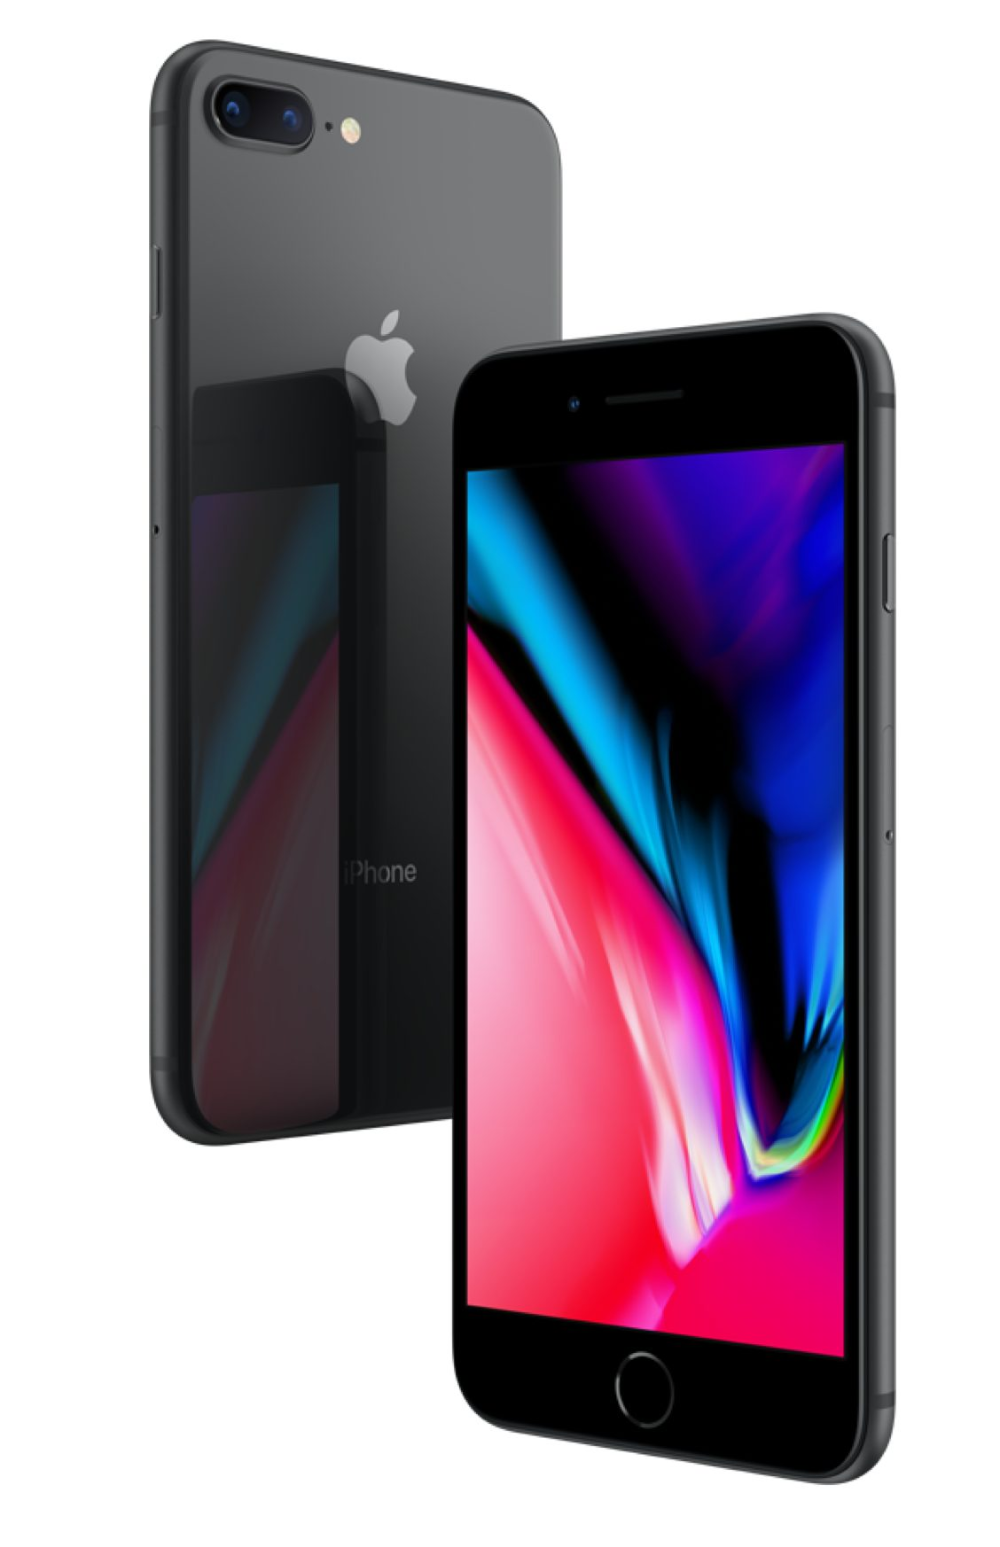 Apple Iphone 8 Plus Features And Reviews Boost Mobile Iphone 8 Iphone 8 Plus Apple Iphone